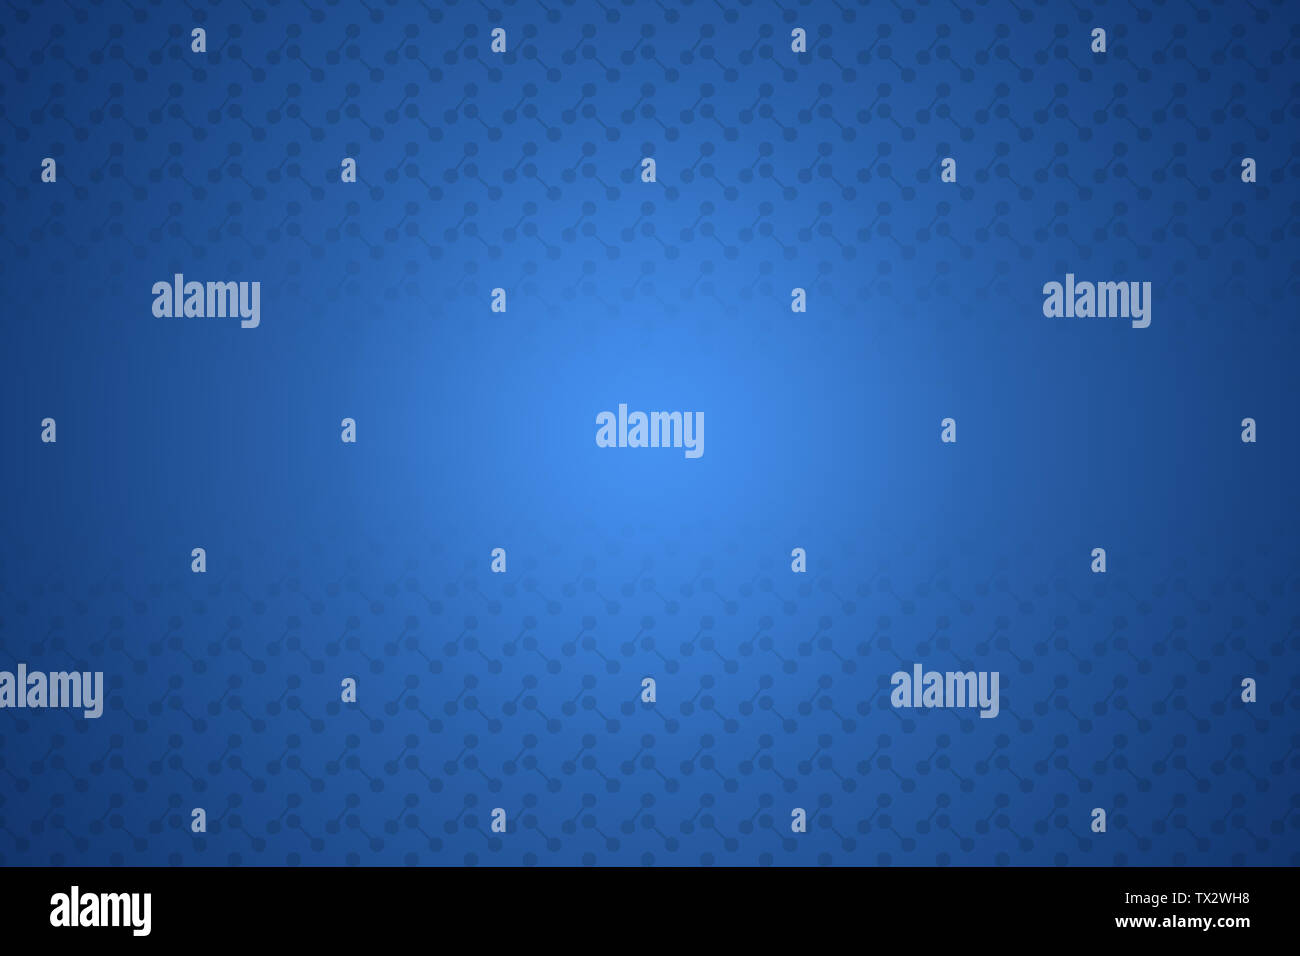 Blue abstract background illustration, Copy space for text banner? - Stock Image